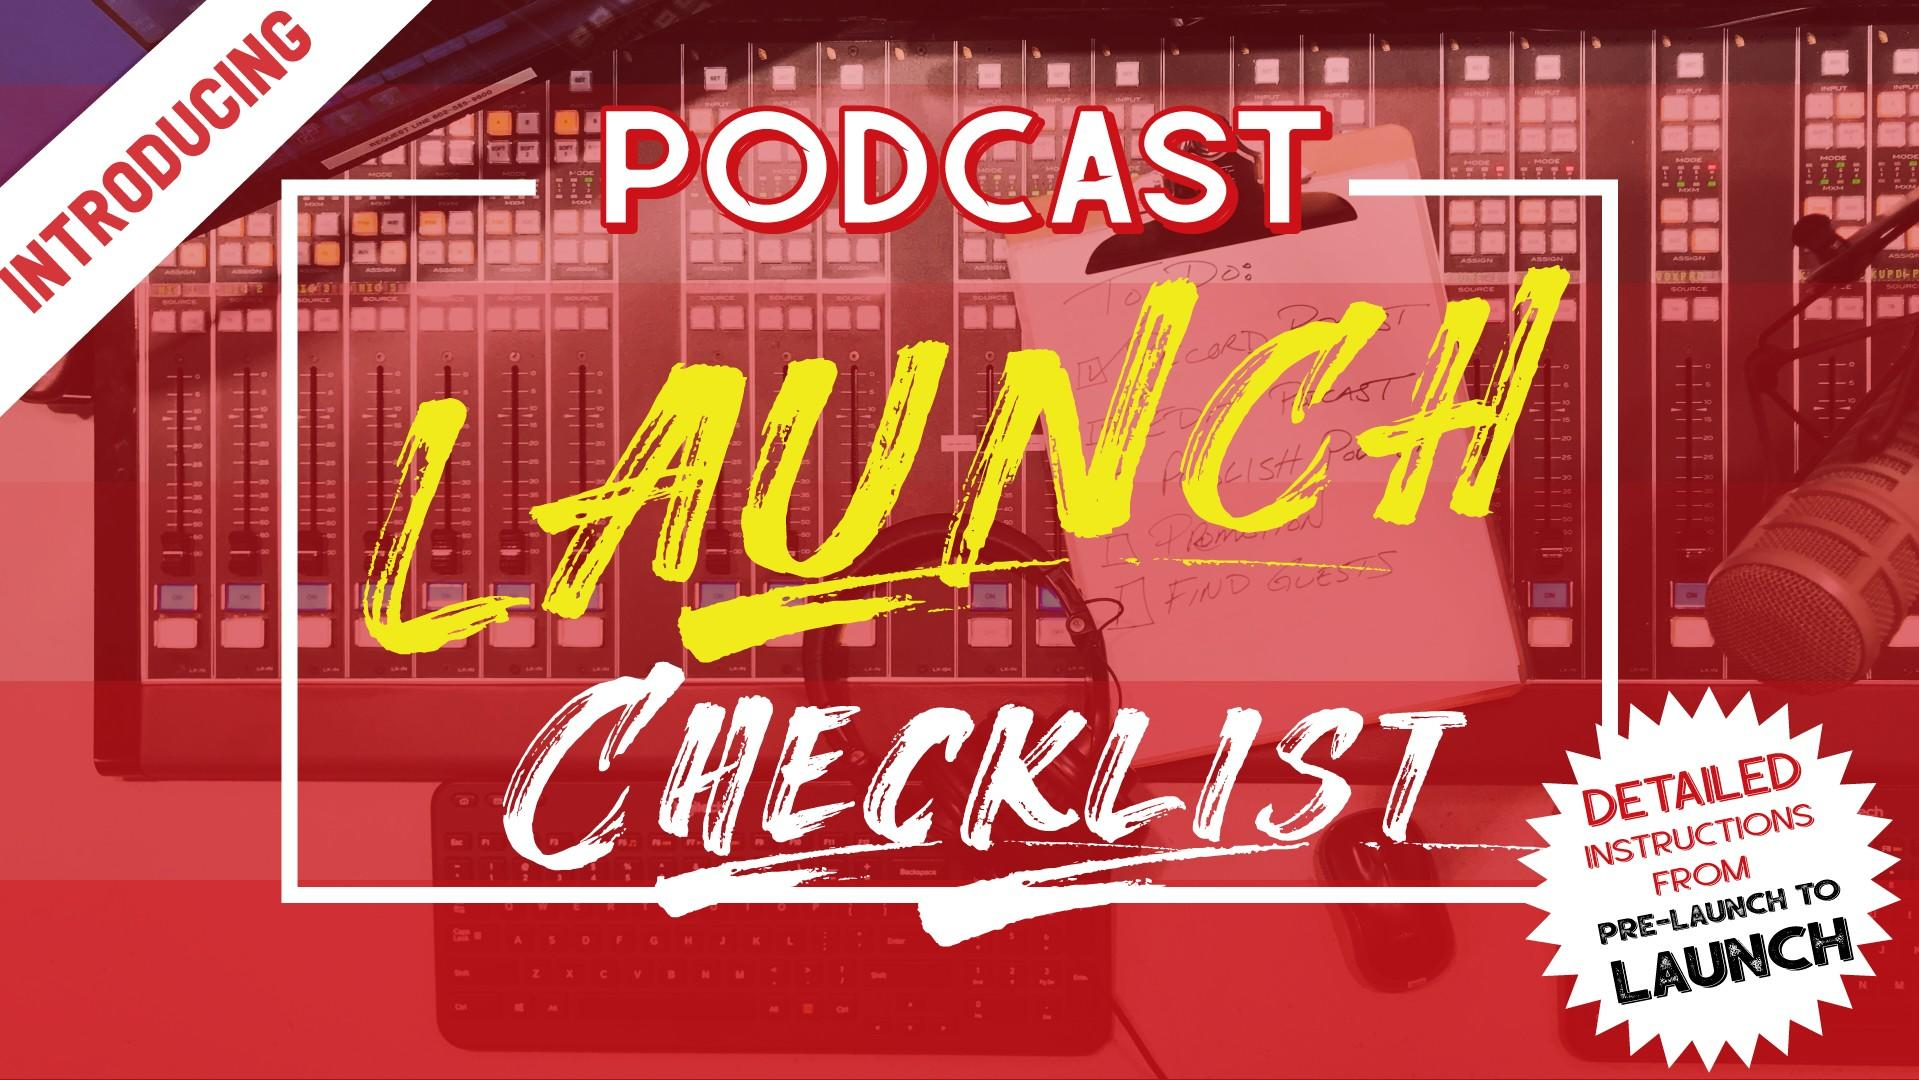 The Podcast Launch Checklist